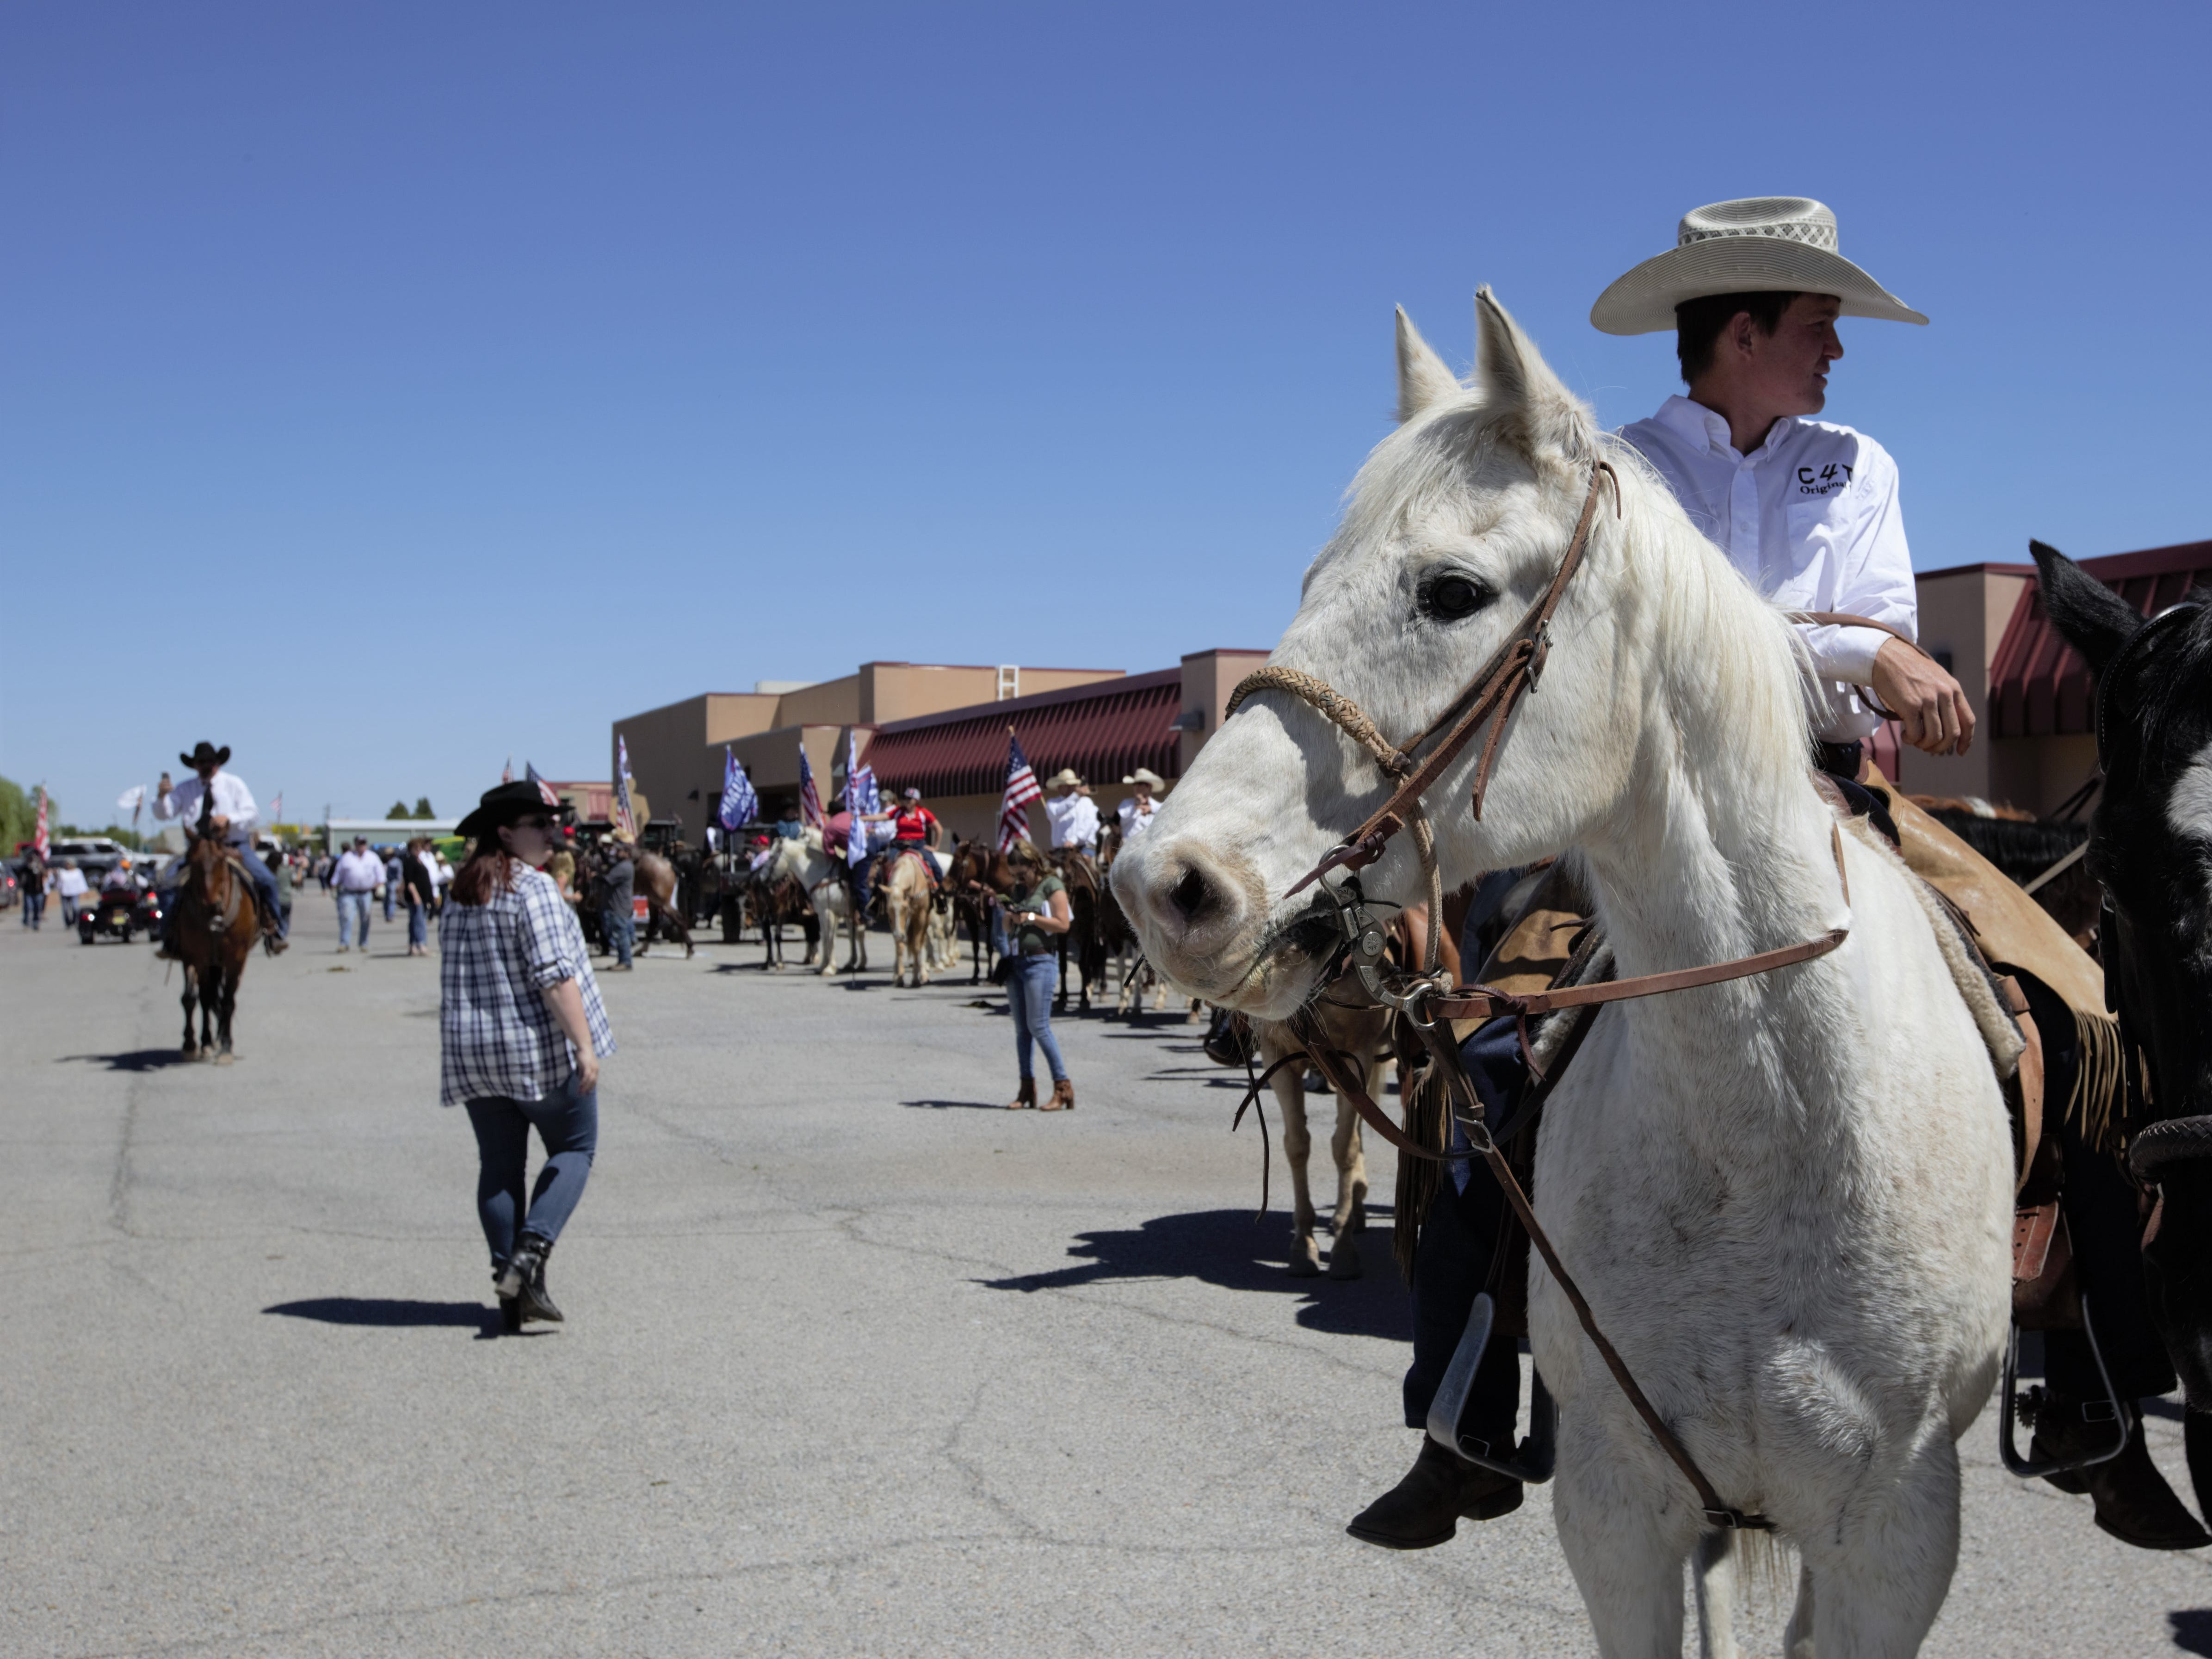 Many participants in a Cowboys for Trump event in Las Cruces on Thursday, April 25, 2019 rode horseback and stayed seated on horses throughout the rally.